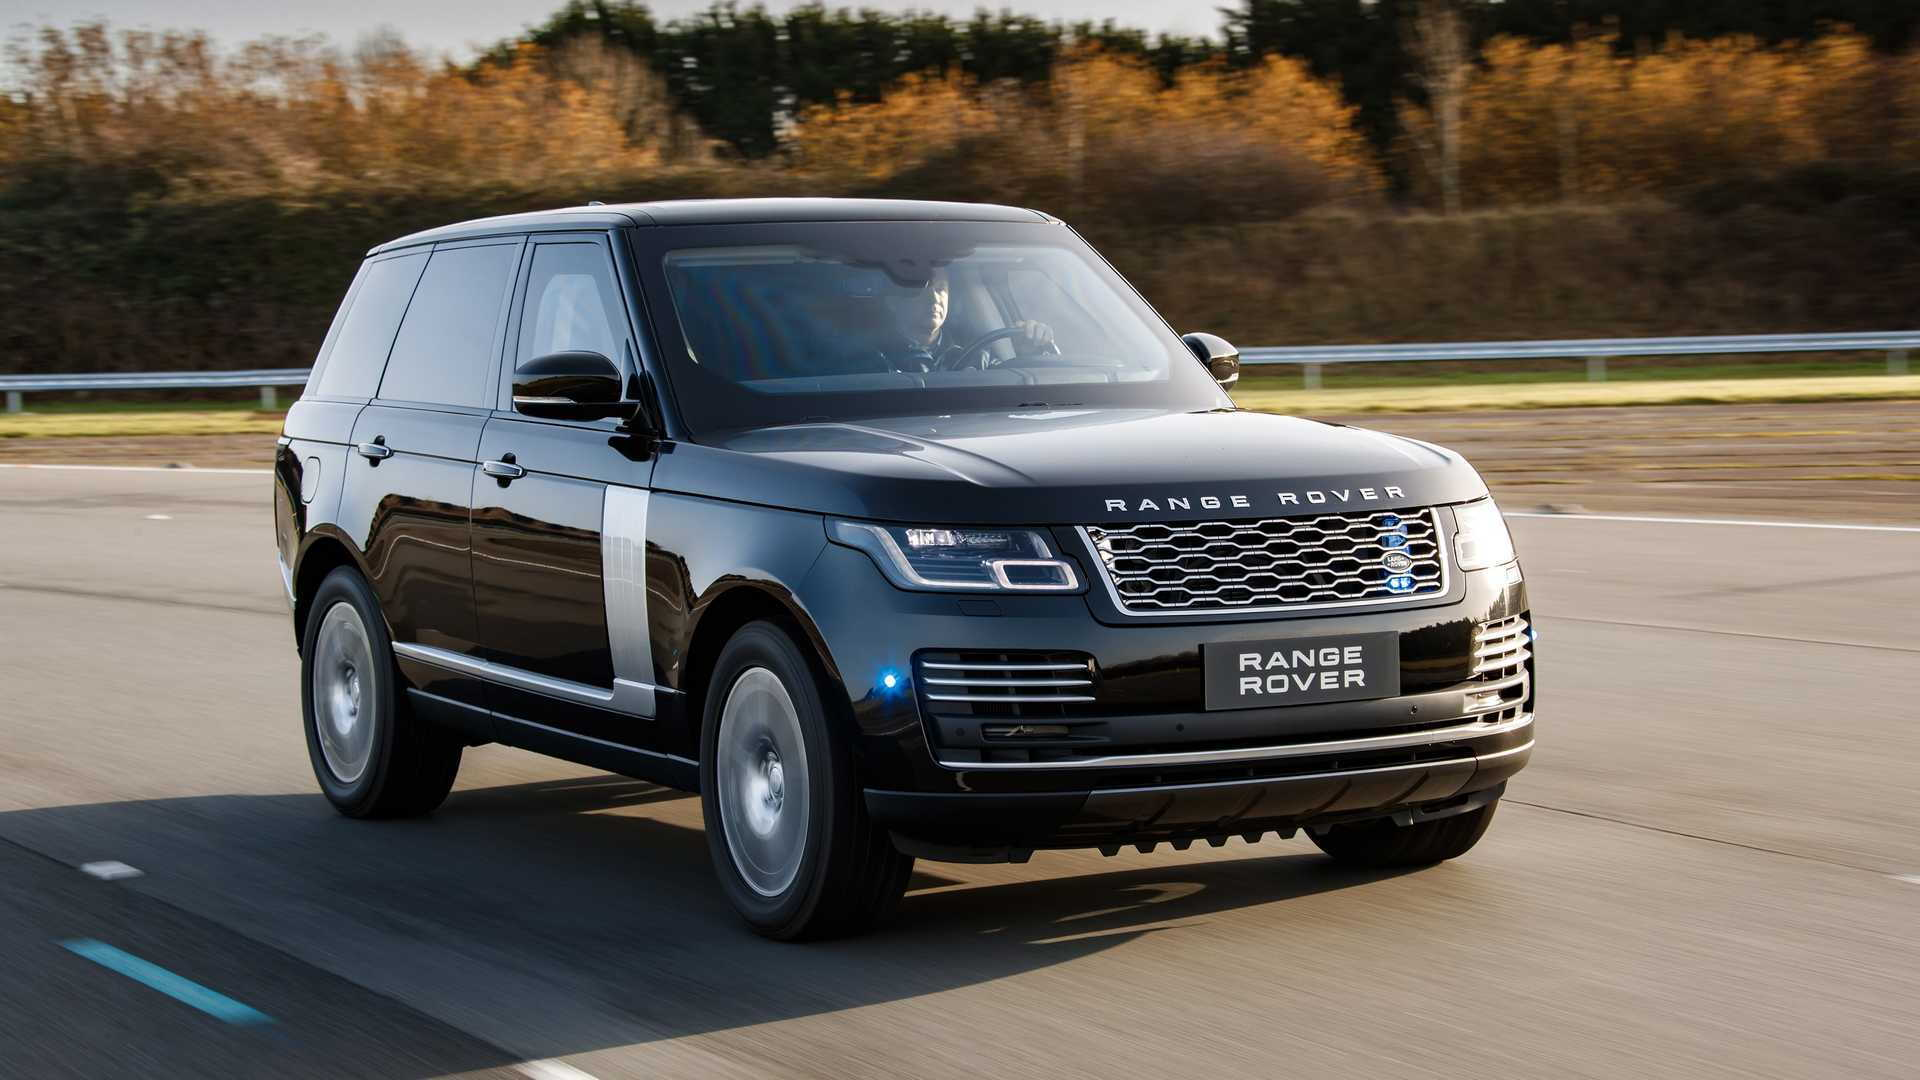 Landrover Range Land Rover Range Rover News Breaking News Photos Videos